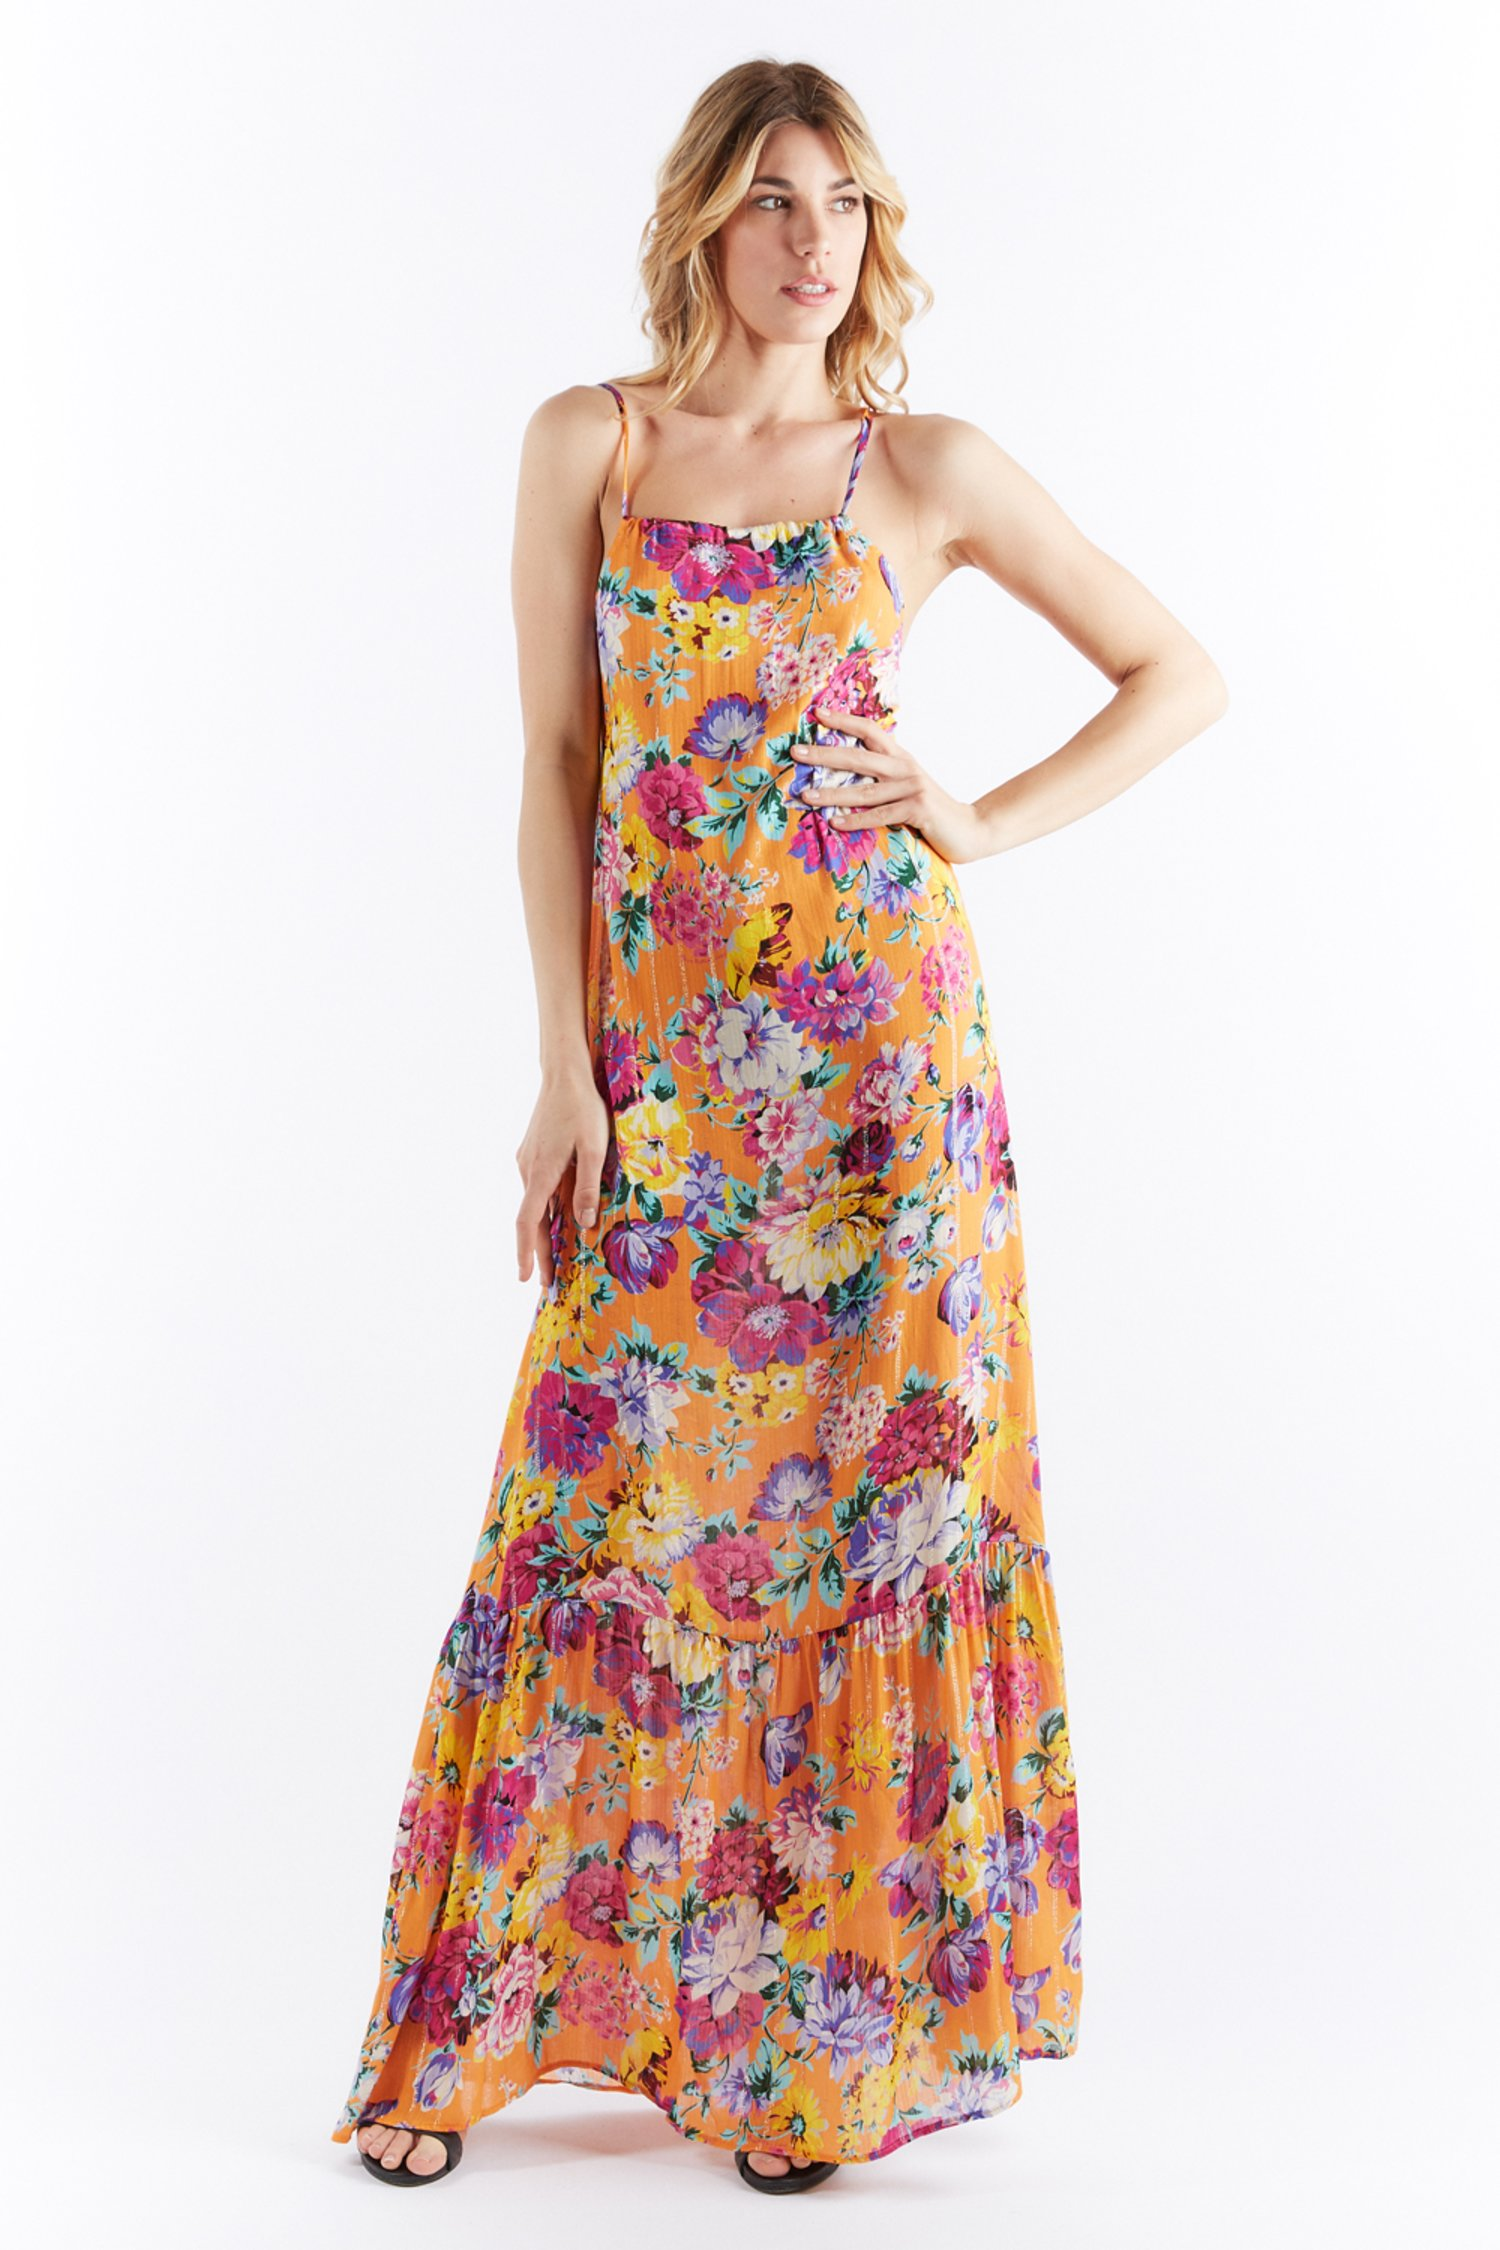 BARED BACK LONG DRESS - Arancio Fiore